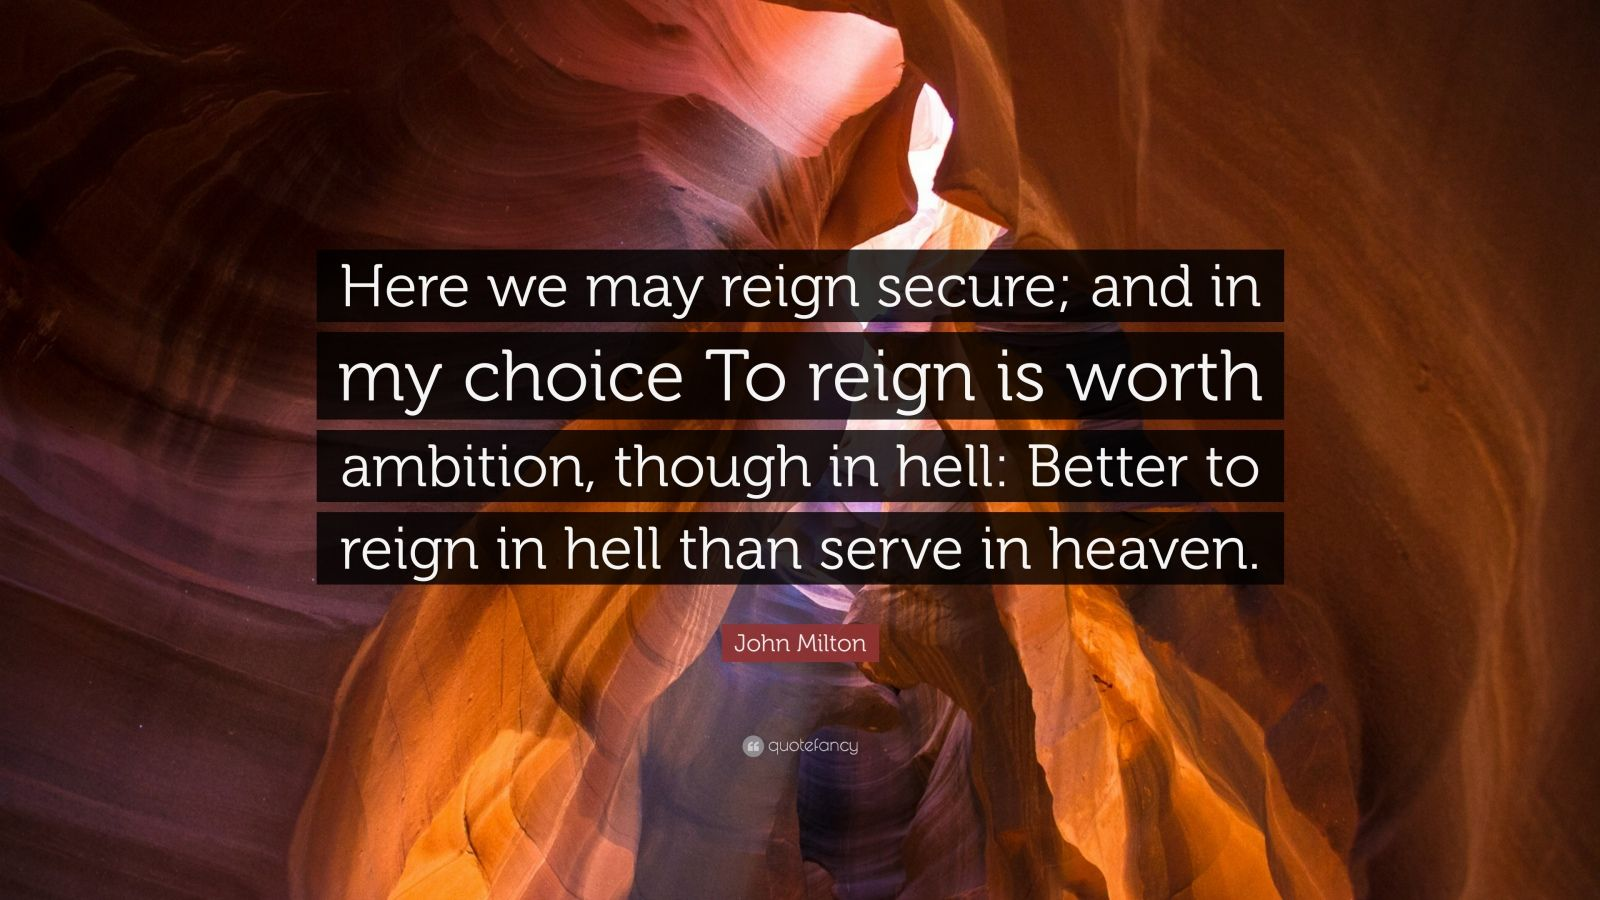 """John Milton Quote: """"Here we may reign secure; and in my choice To reign is worth ambition, though in hell: Better to reign in hell than serve in heaven."""""""